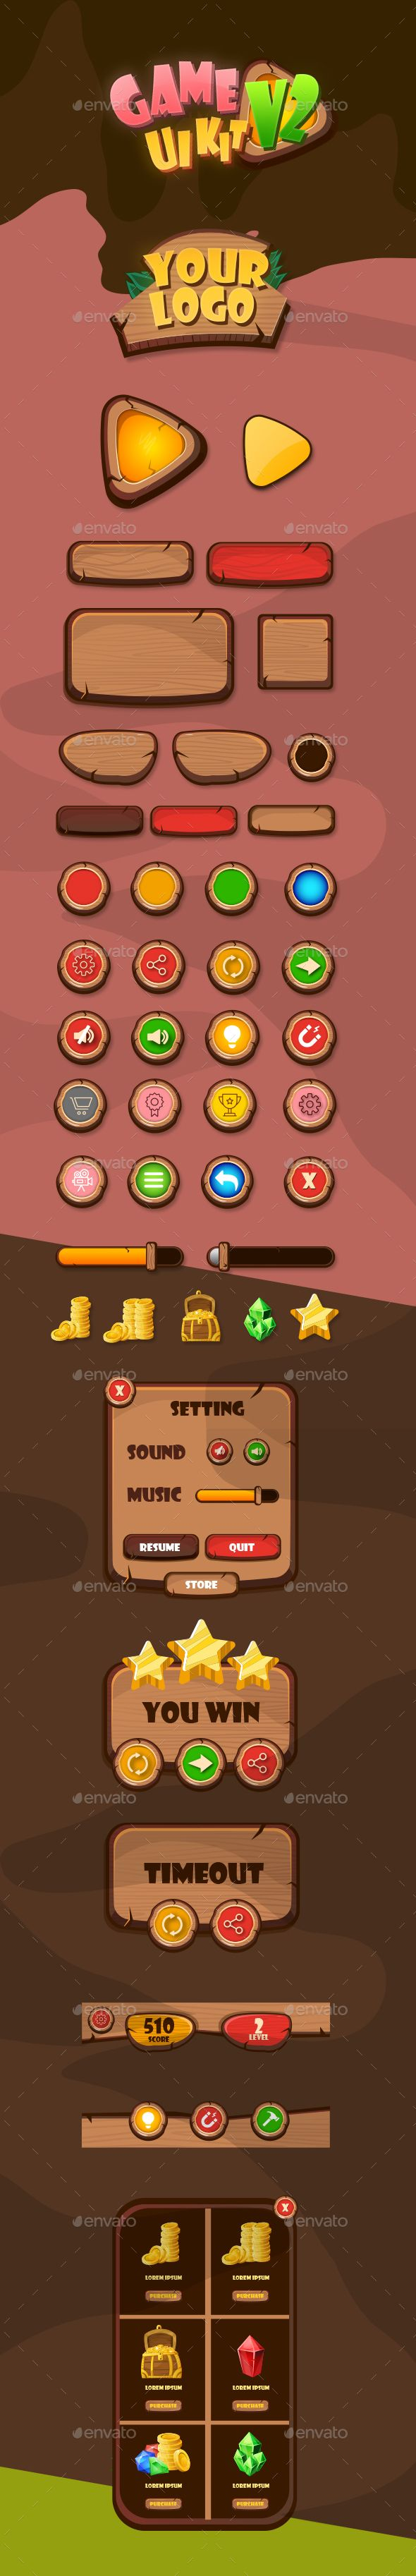 Pin by Graphic Assets on Royalty Free Game User UI Templates